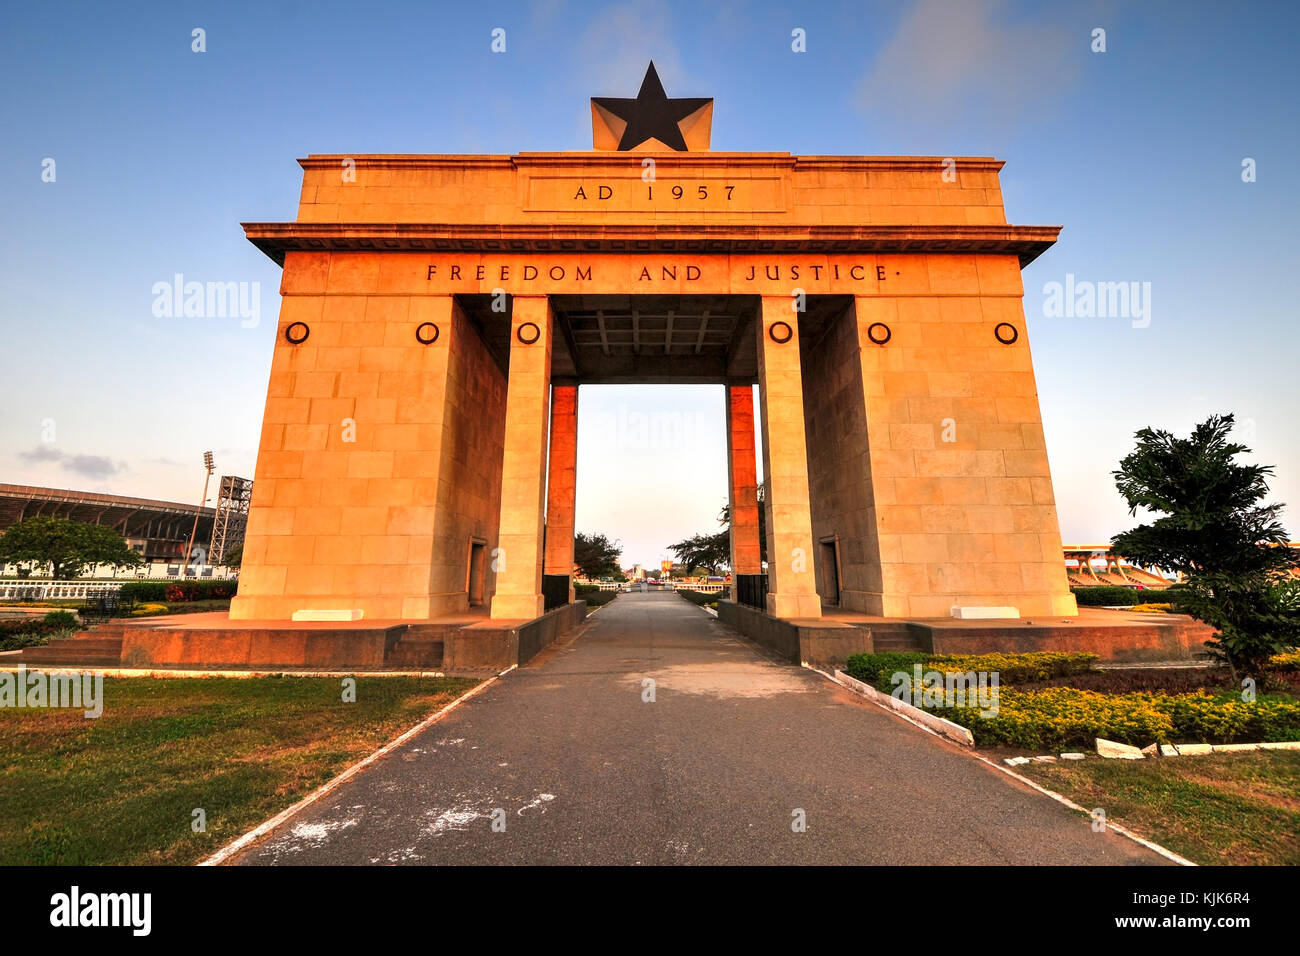 independence of ghana The independence of ghana united were the people of what would soon be known as ghana, who fought for the same single goal: independence from great britain february of 1948 marked the official movement for ghanaian independence.